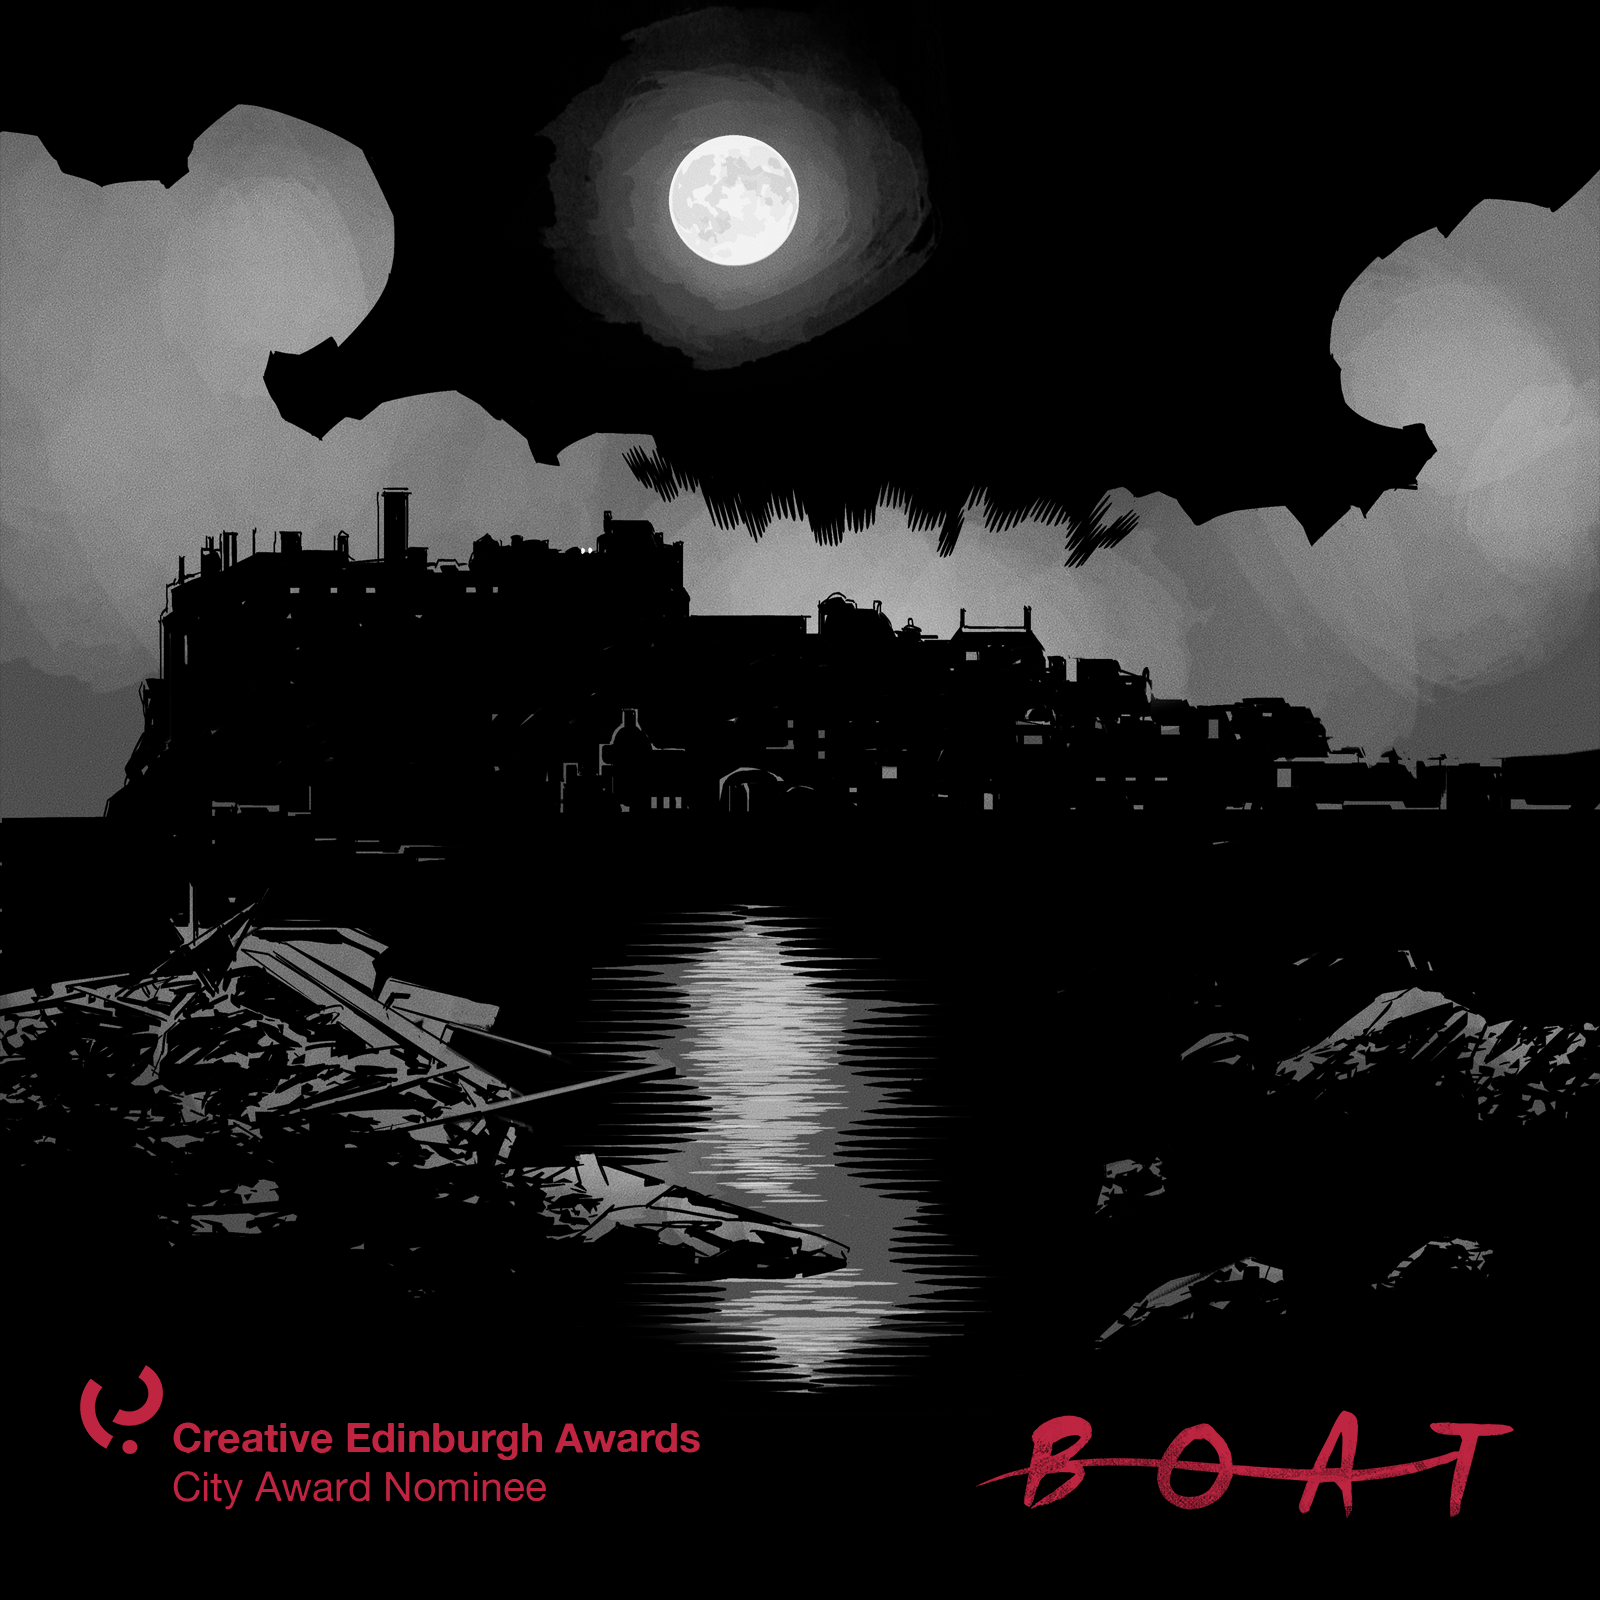 creative edinburgh awards - social media - 1.png